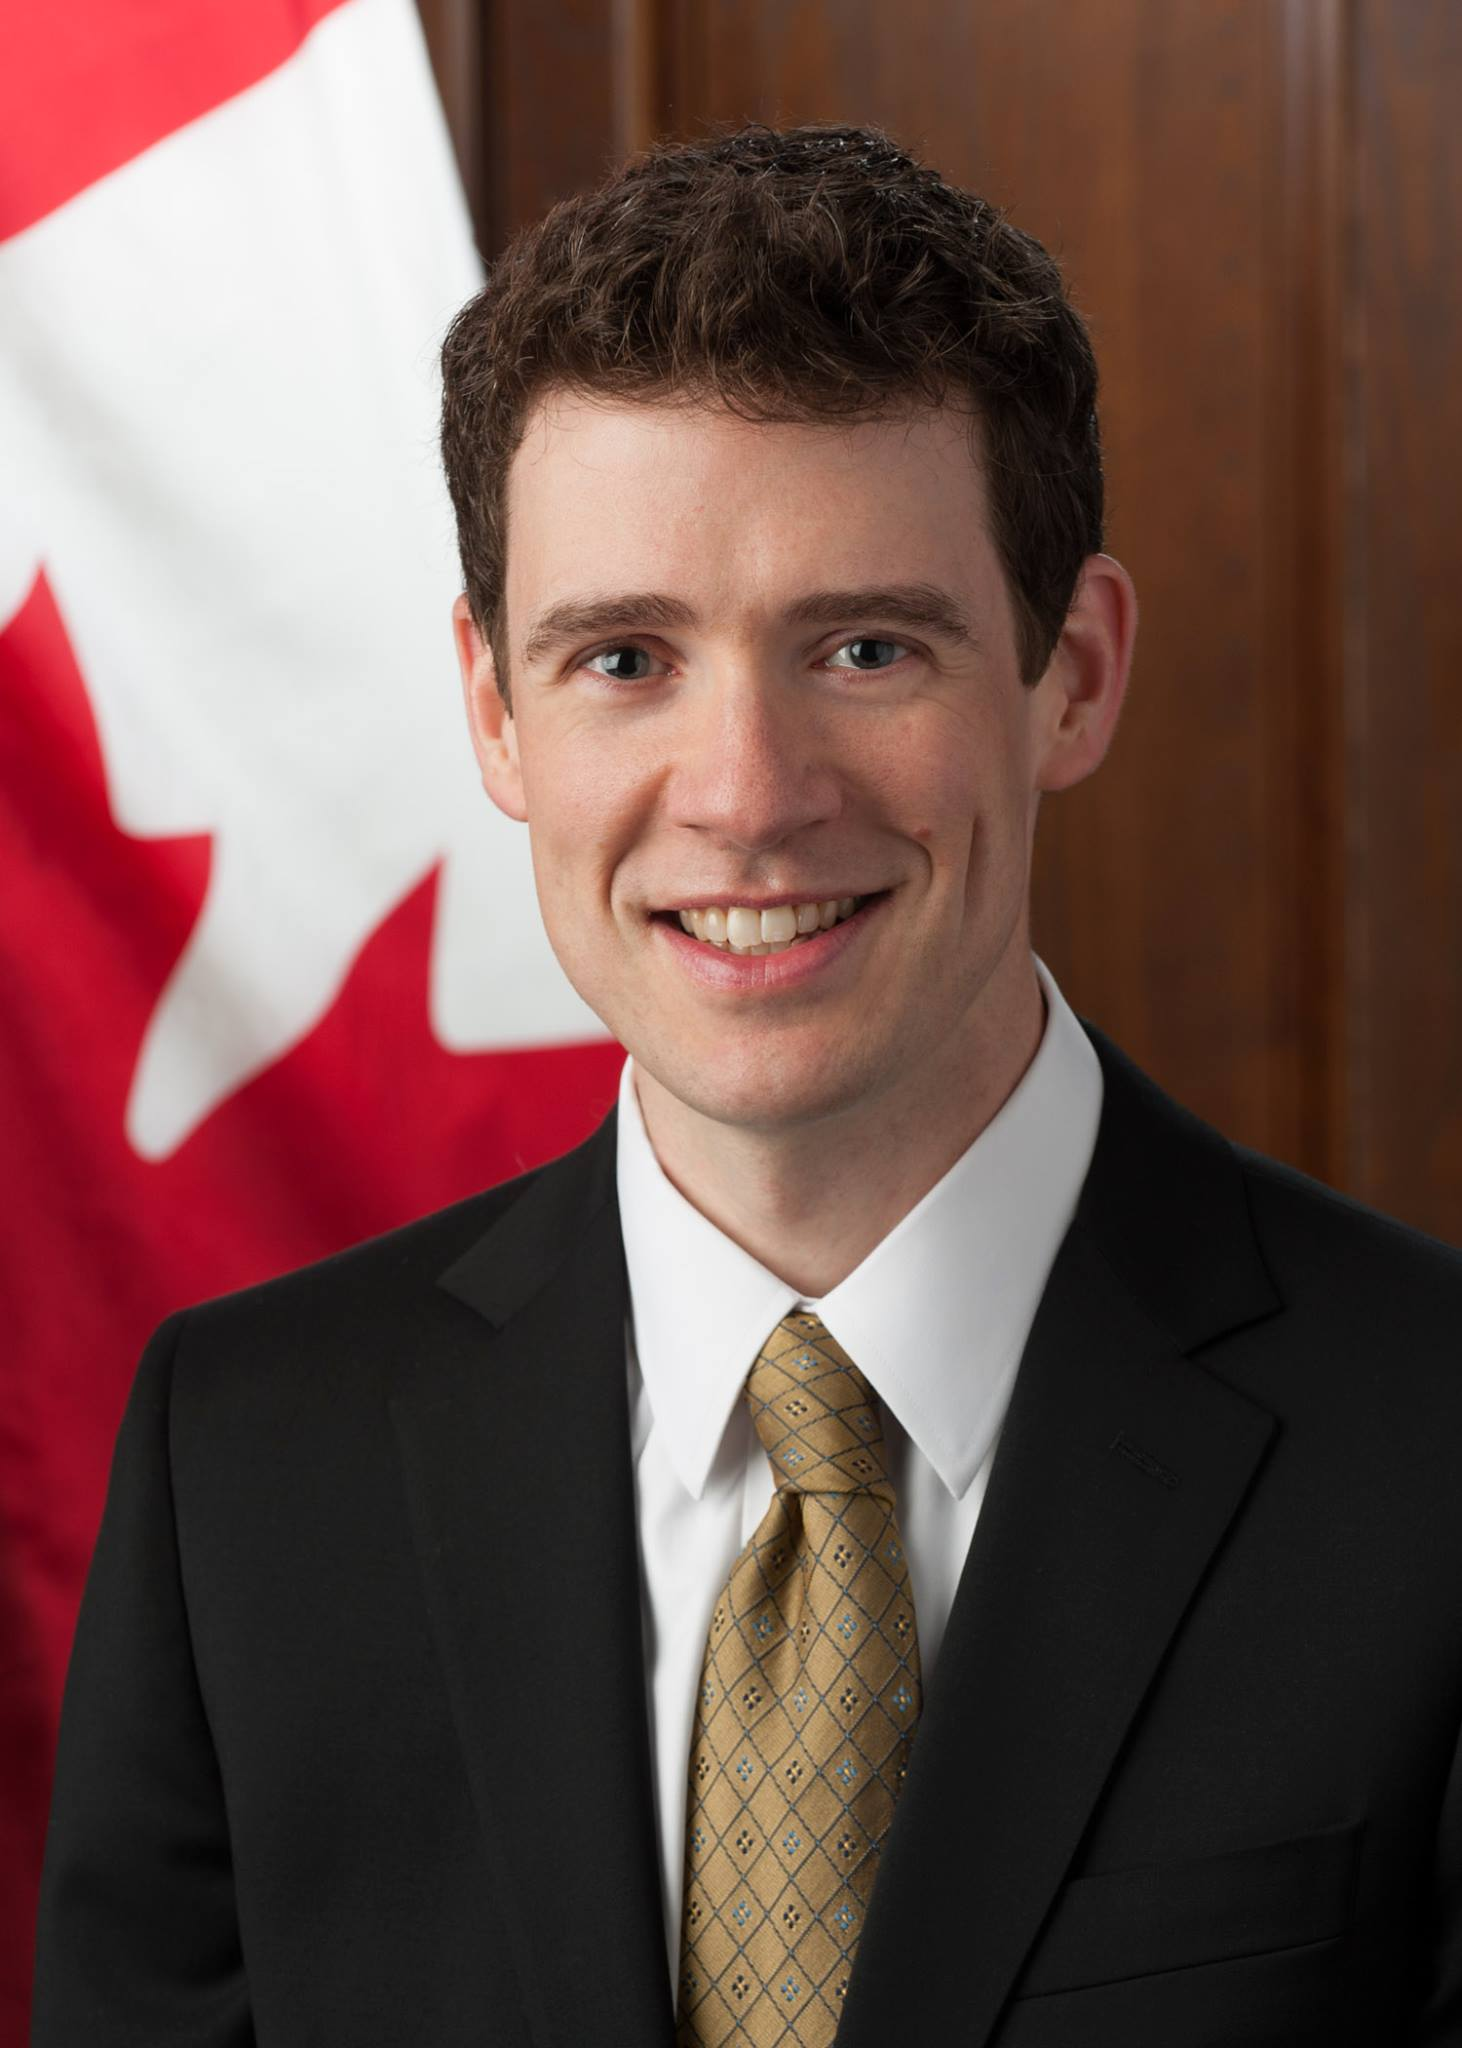 Religious freedoms ambassador, Andrew Bennett. (Photo: Canada's Office of Religious Freedom|Facebook)